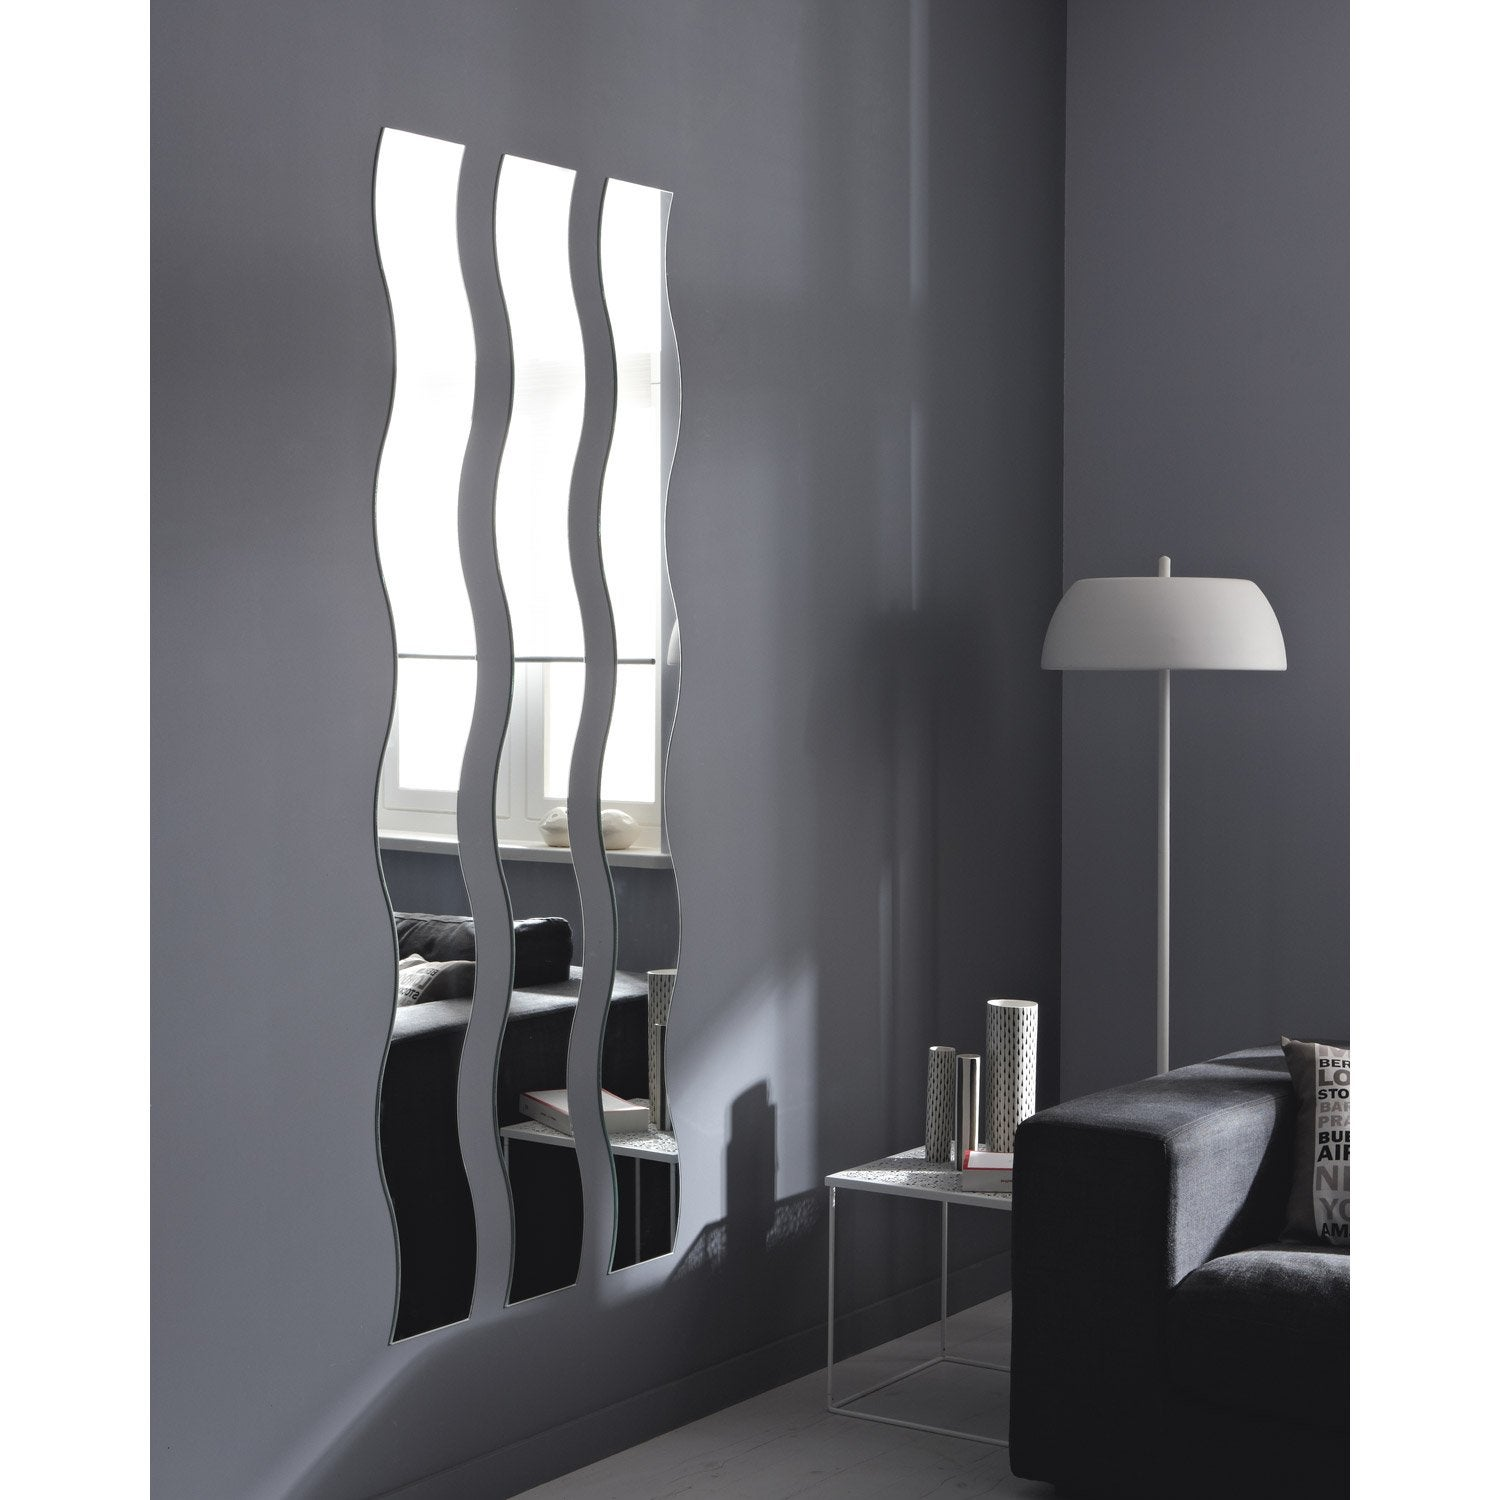 miroir vague poli sensea 160 5 x 20 cm leroy merlin. Black Bedroom Furniture Sets. Home Design Ideas